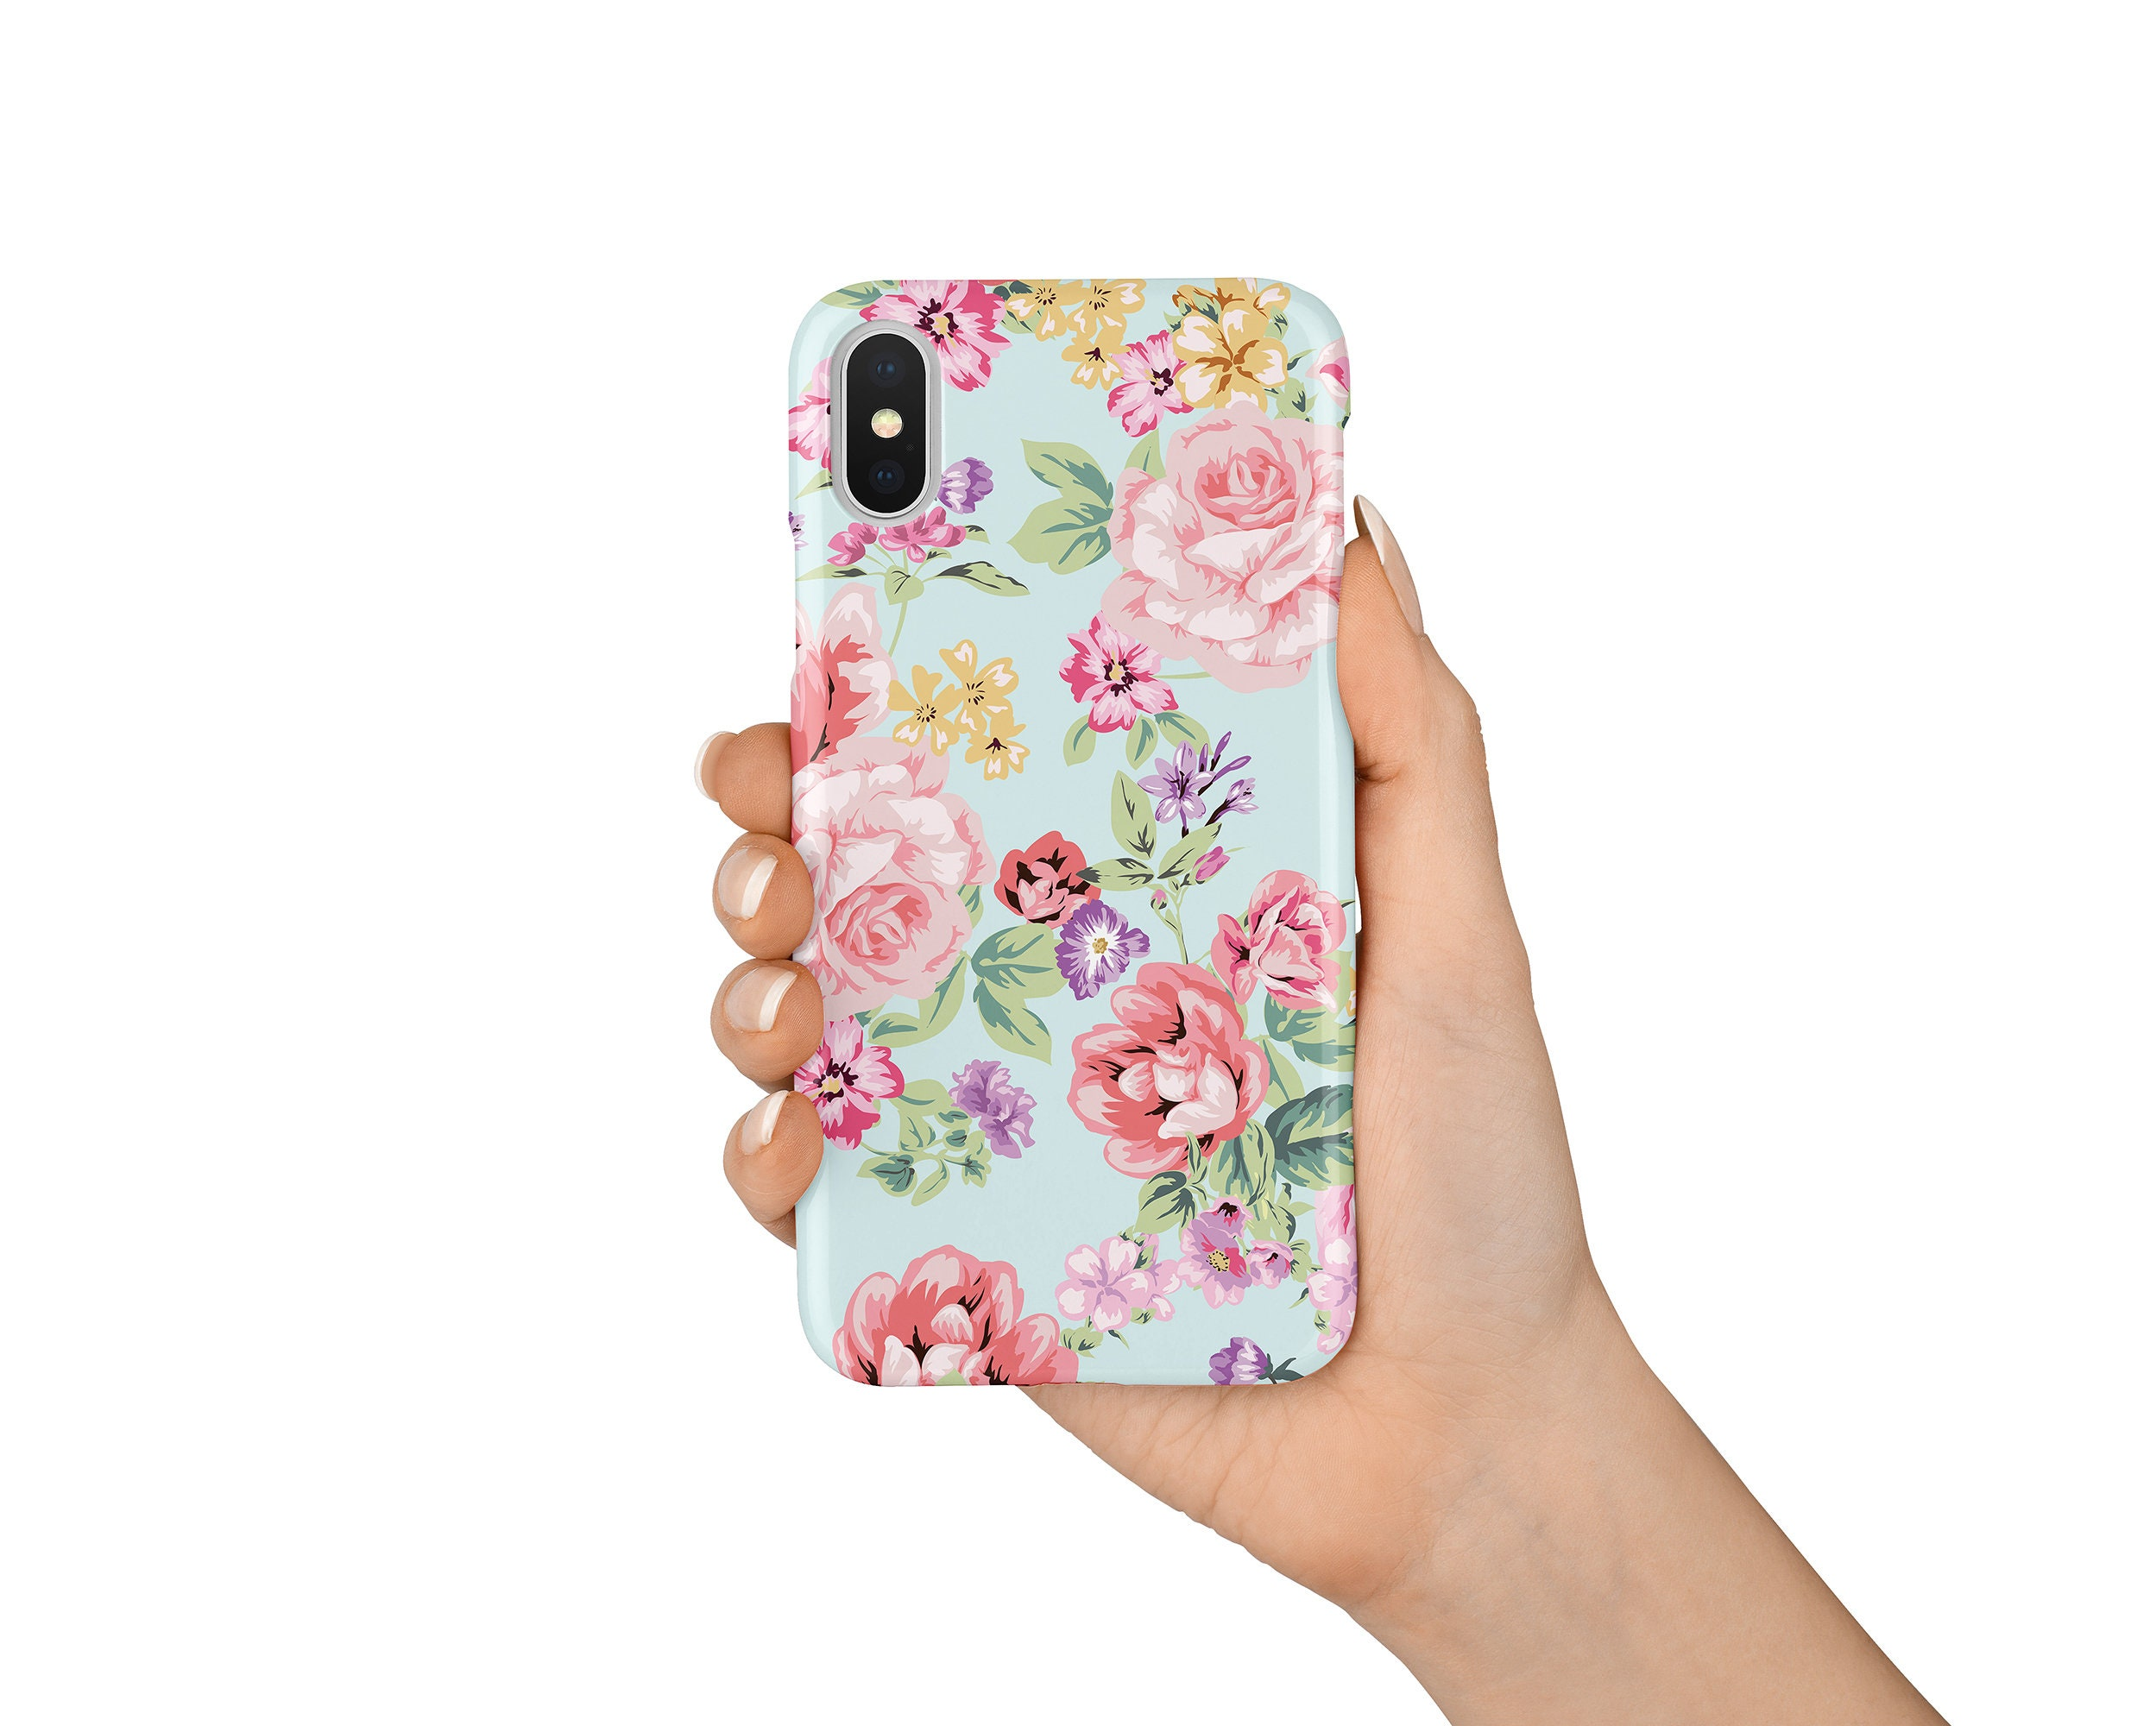 Floral Iphone X Case Iphone 8 Case Iphone 7 Case Iphone 8 Etsy